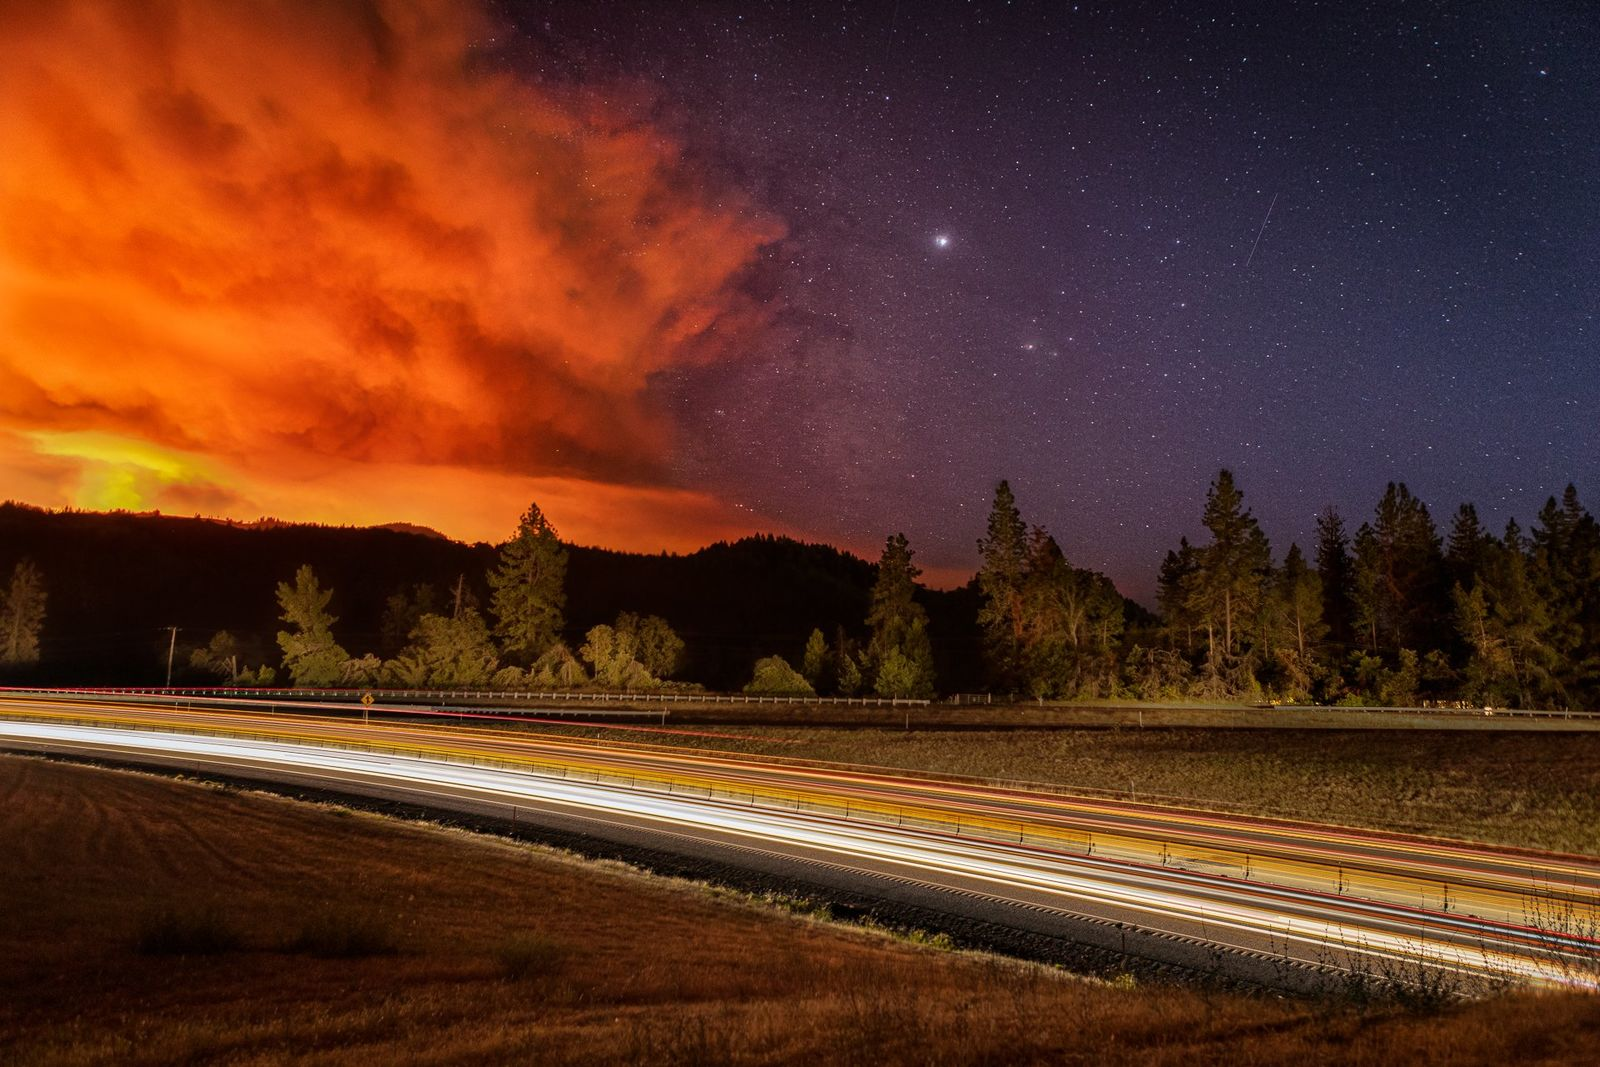 Milepost 97 fire - Photo by Ross Steensland via Oregon Department of Forestry